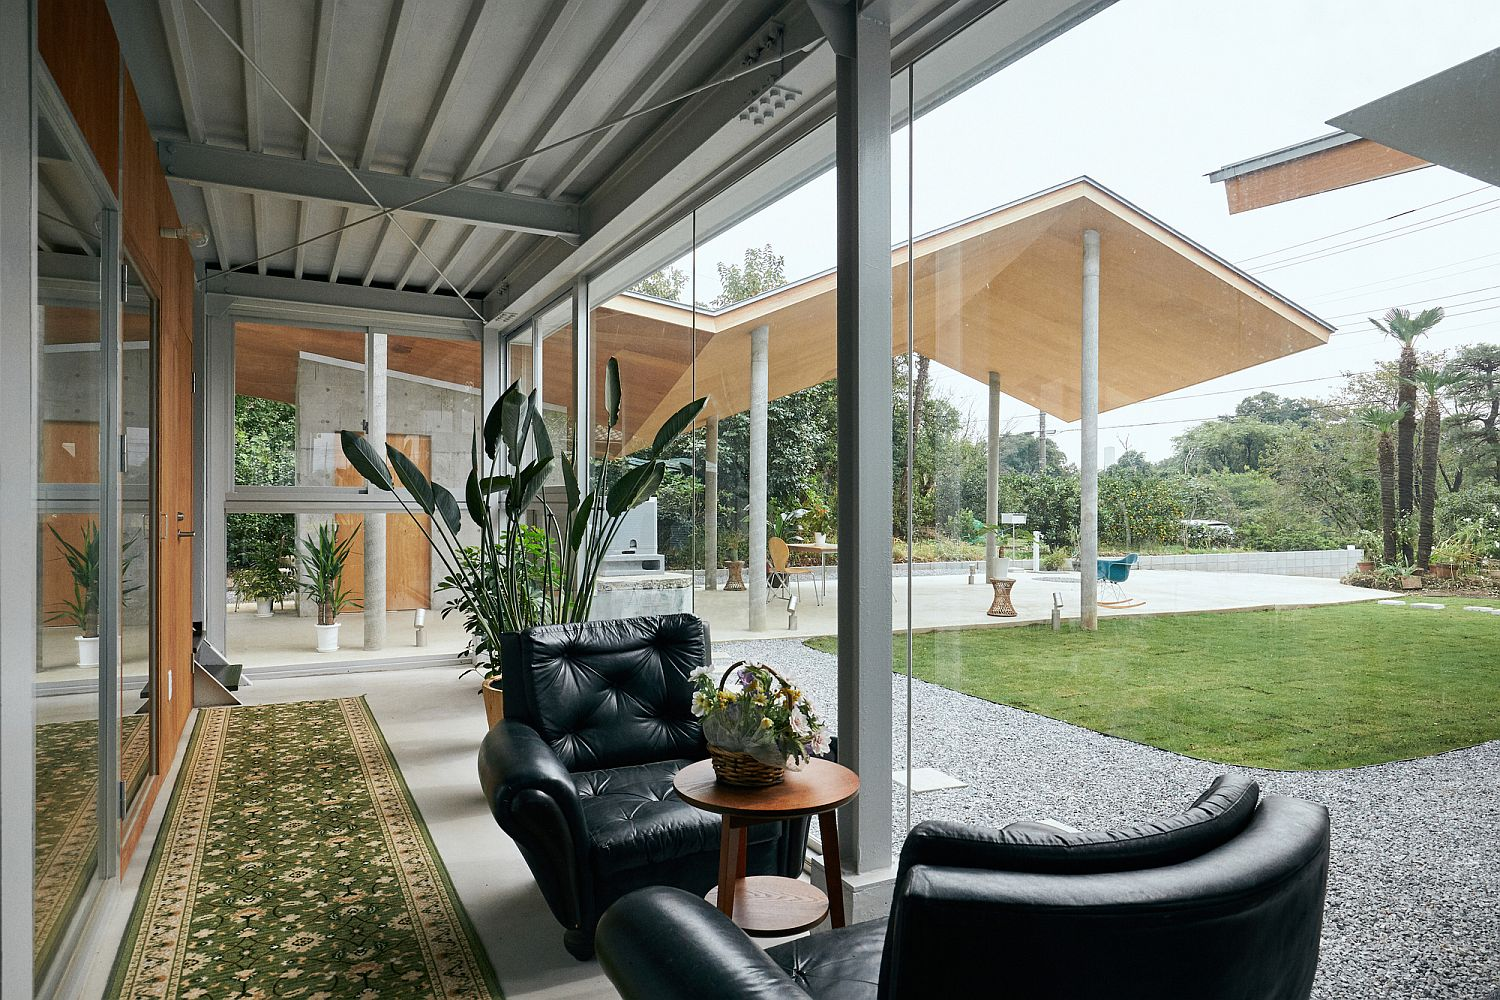 Glass walls ensure that the outdoors are always a part of the interior